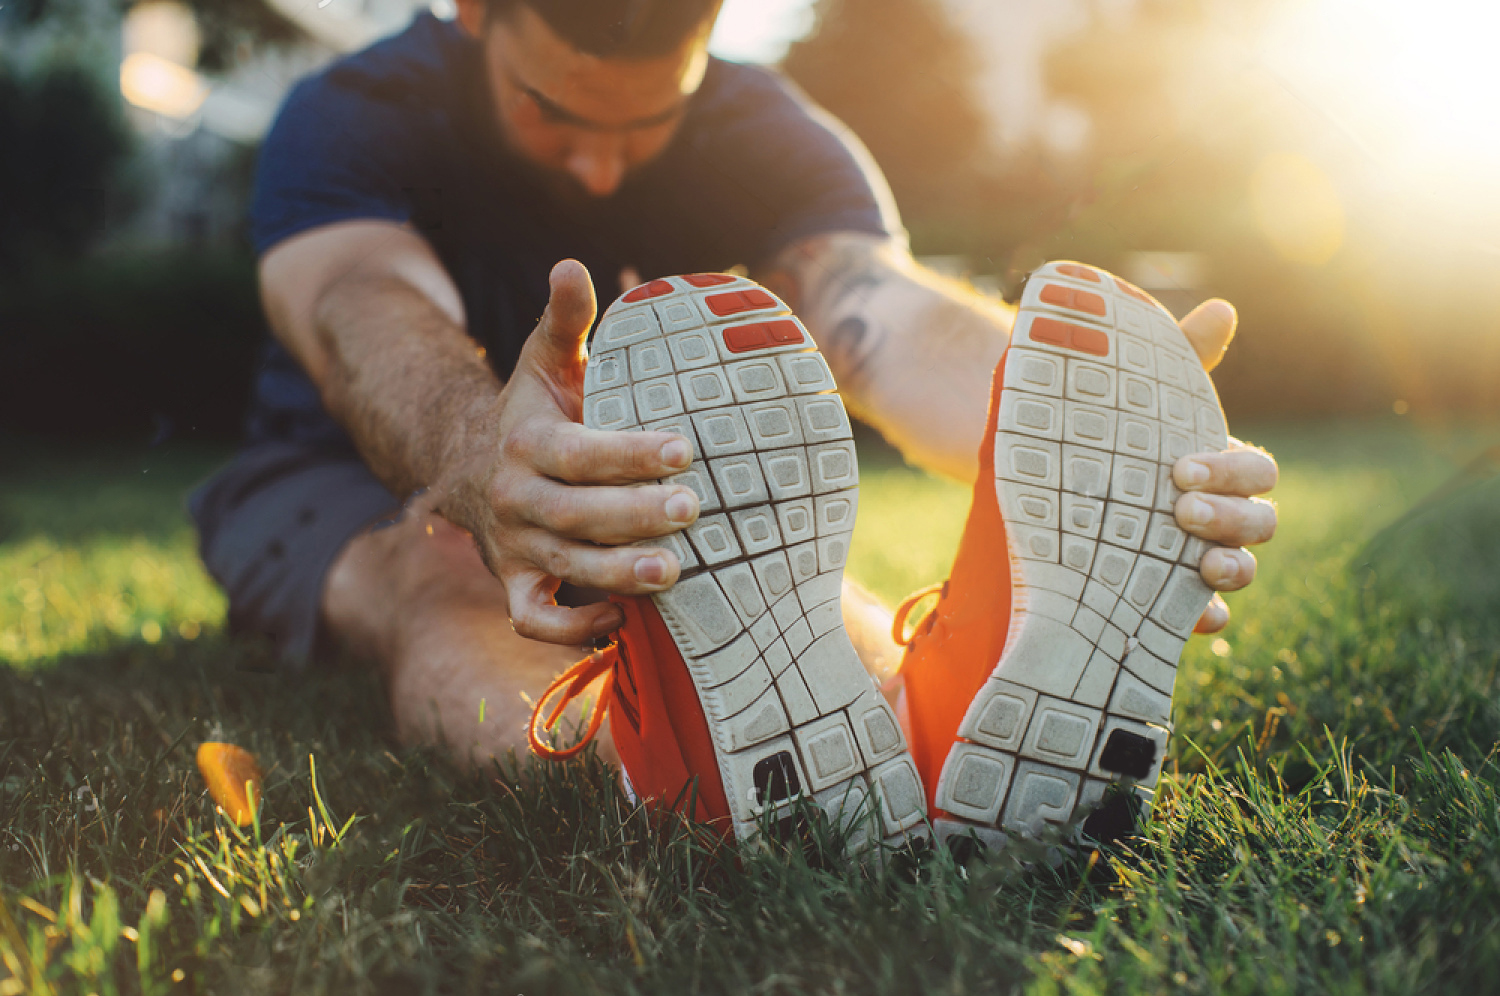 stock-photo-attractive-young-man-stretching-in-the-park-before-running-at-the-sunset-focus-on-shoes-684709789 copy.jpg